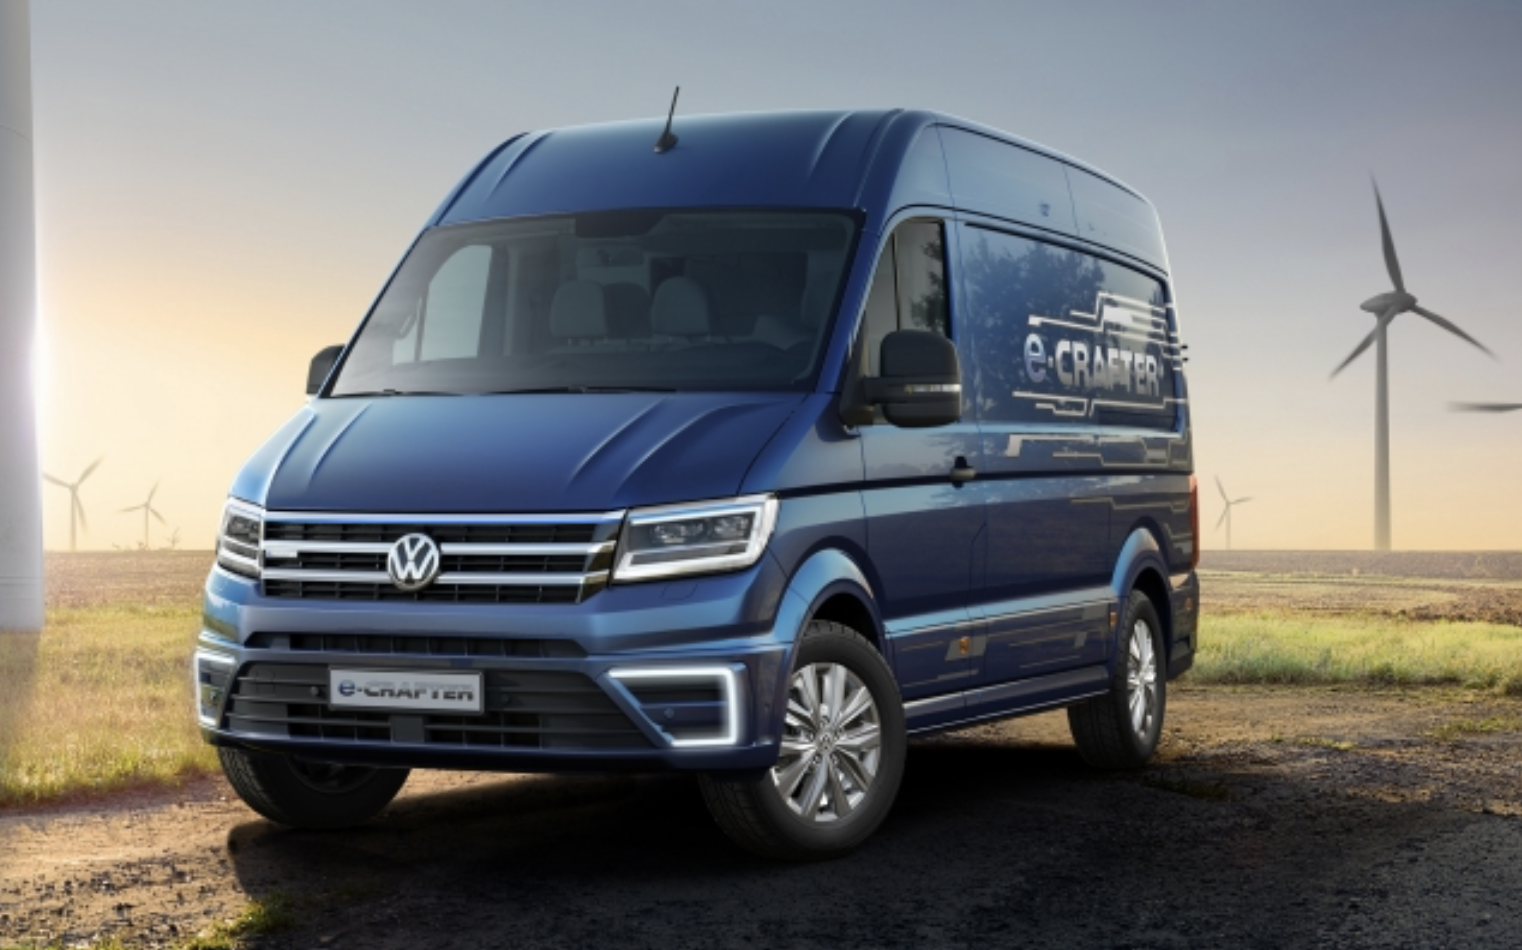 New Electric VW Crafter Vans In Stock For Sale & Lease